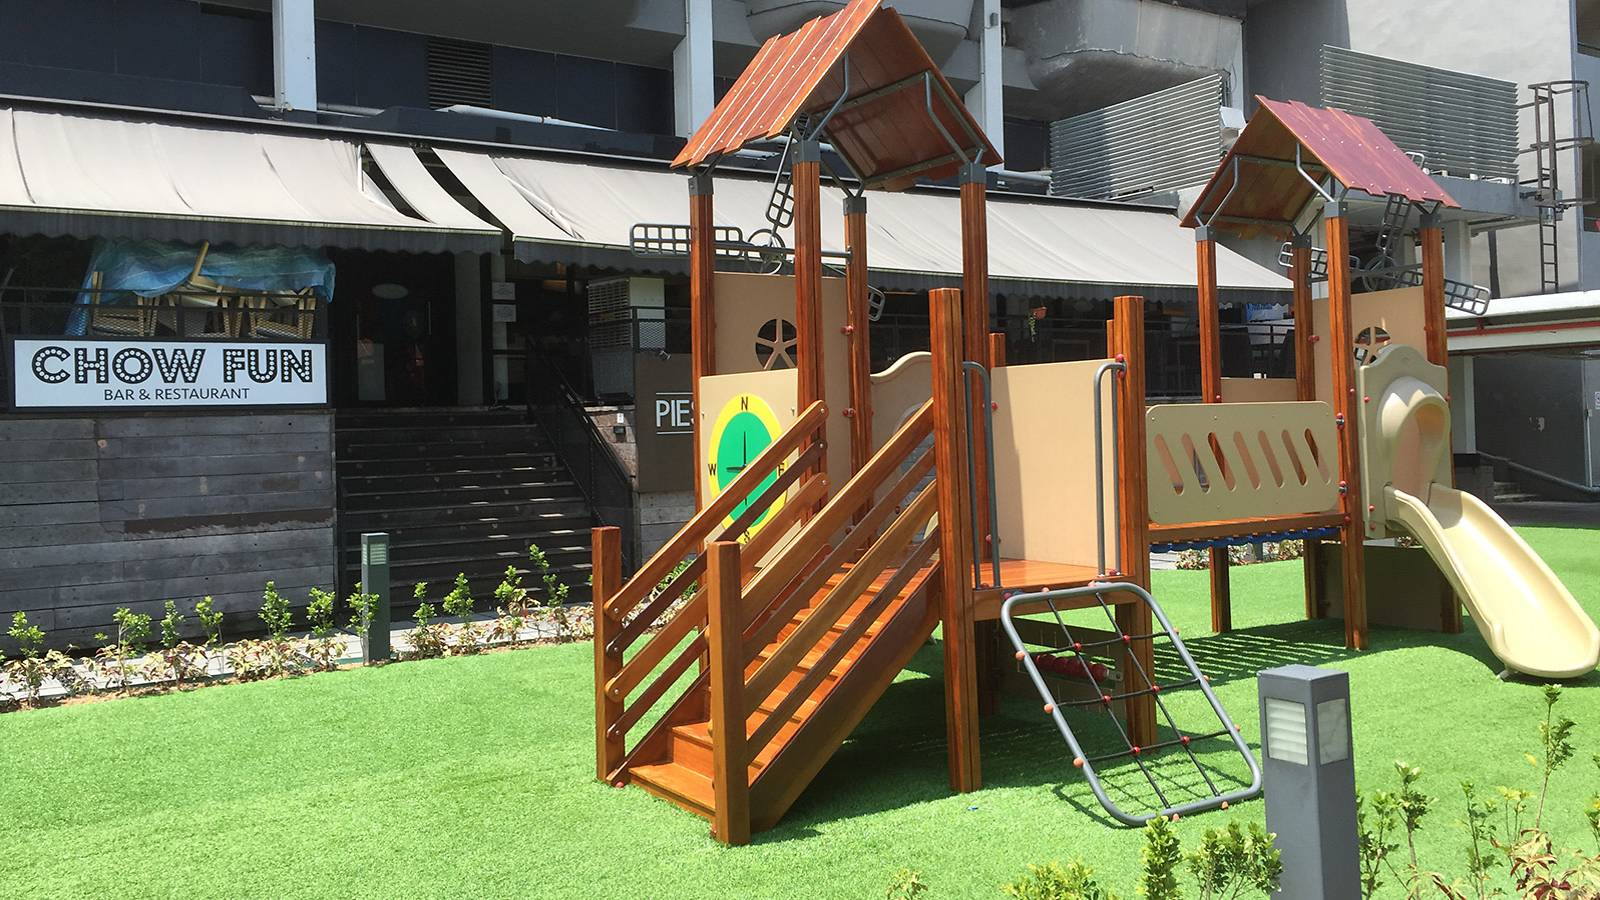 Parents-Restaurant-Review-–-Chow-Fun-Restaurant-&-Bar-PLAYGROUND